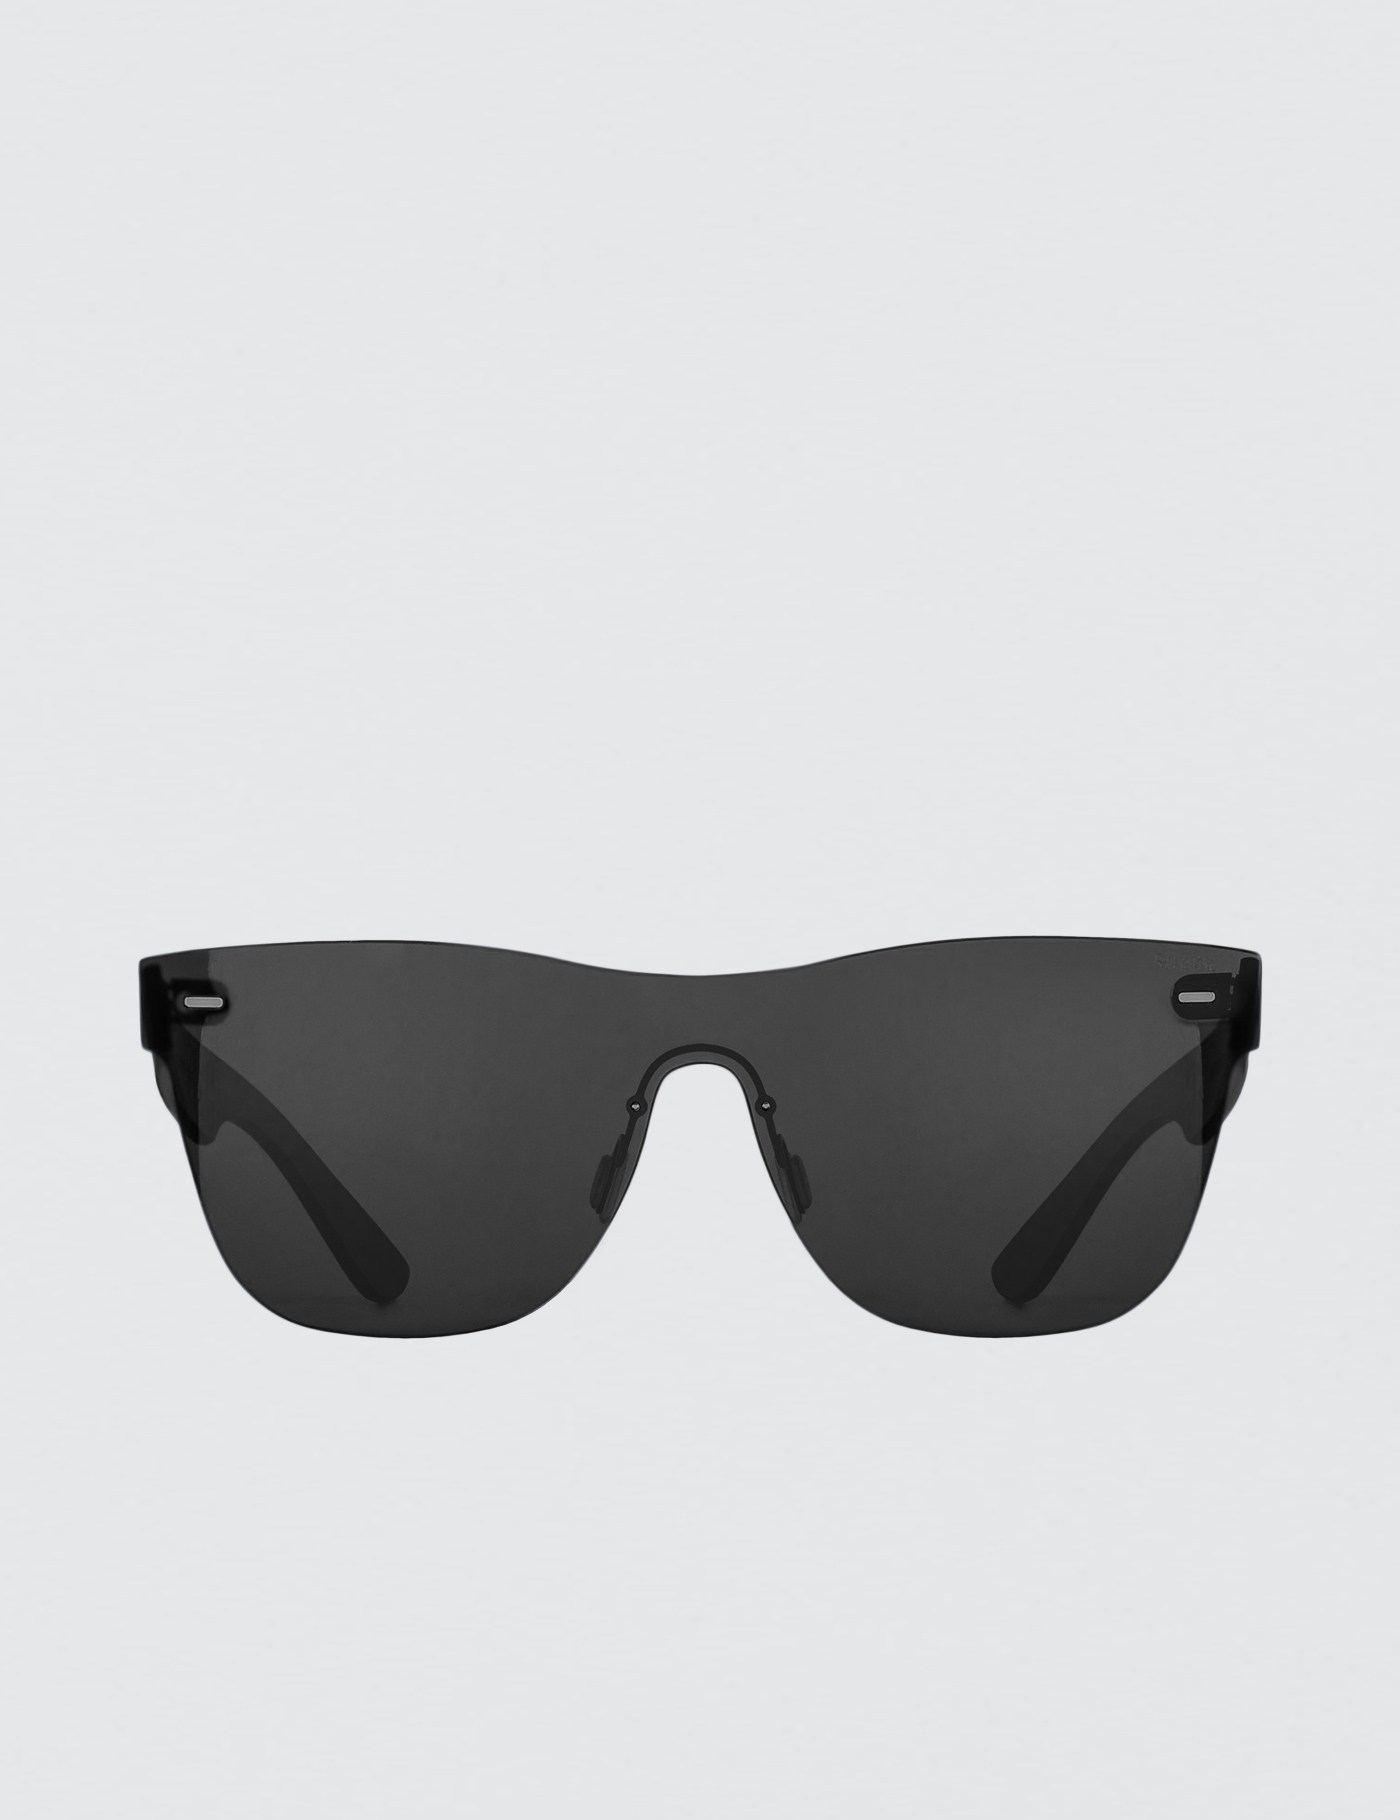 13ca7ceb7e3 ... SUPER BY RETROSUPERFUTURE Tuttolente Classic Black Sunglasses ...